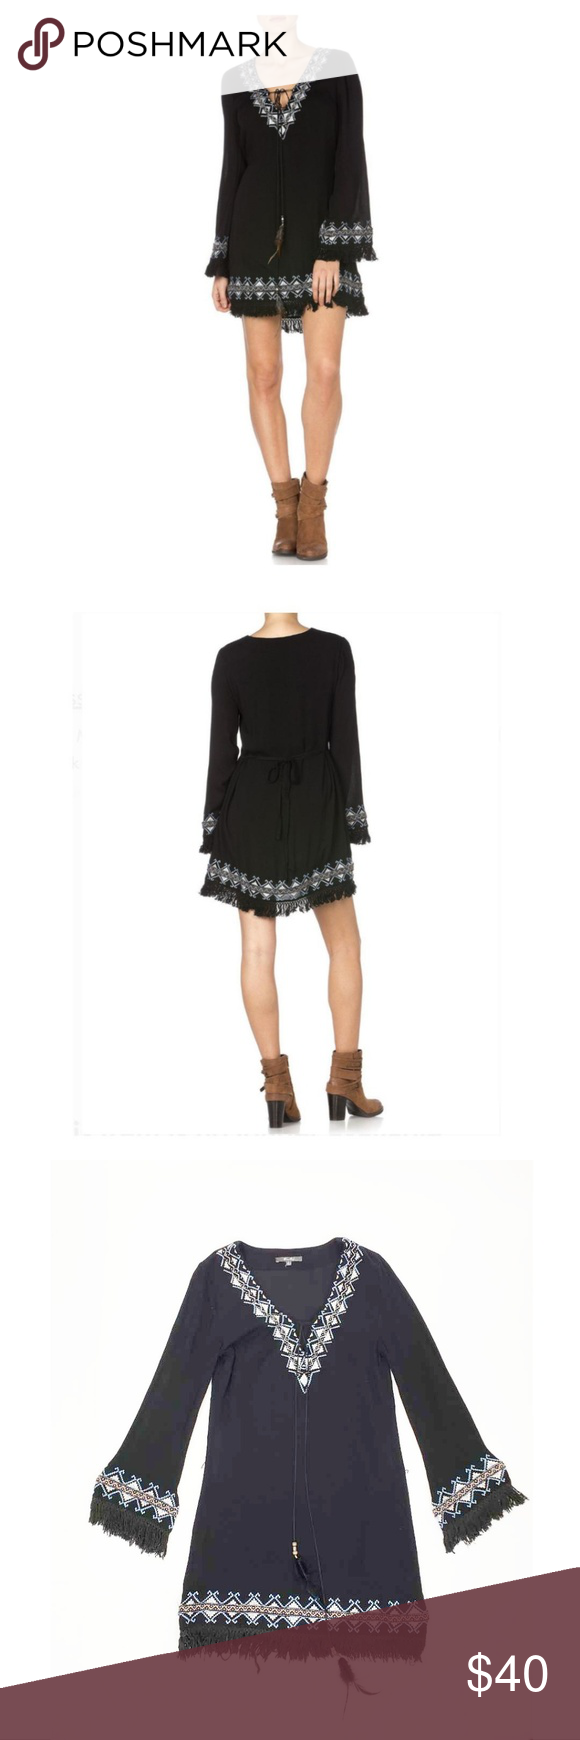 c8289134752d Miss Me Embroidered Fringe Dress Miss Me black embroidered fringe dress  Size  S Material  100% Rayon Measurements  Chest  34 in. Sleeve  23 in.